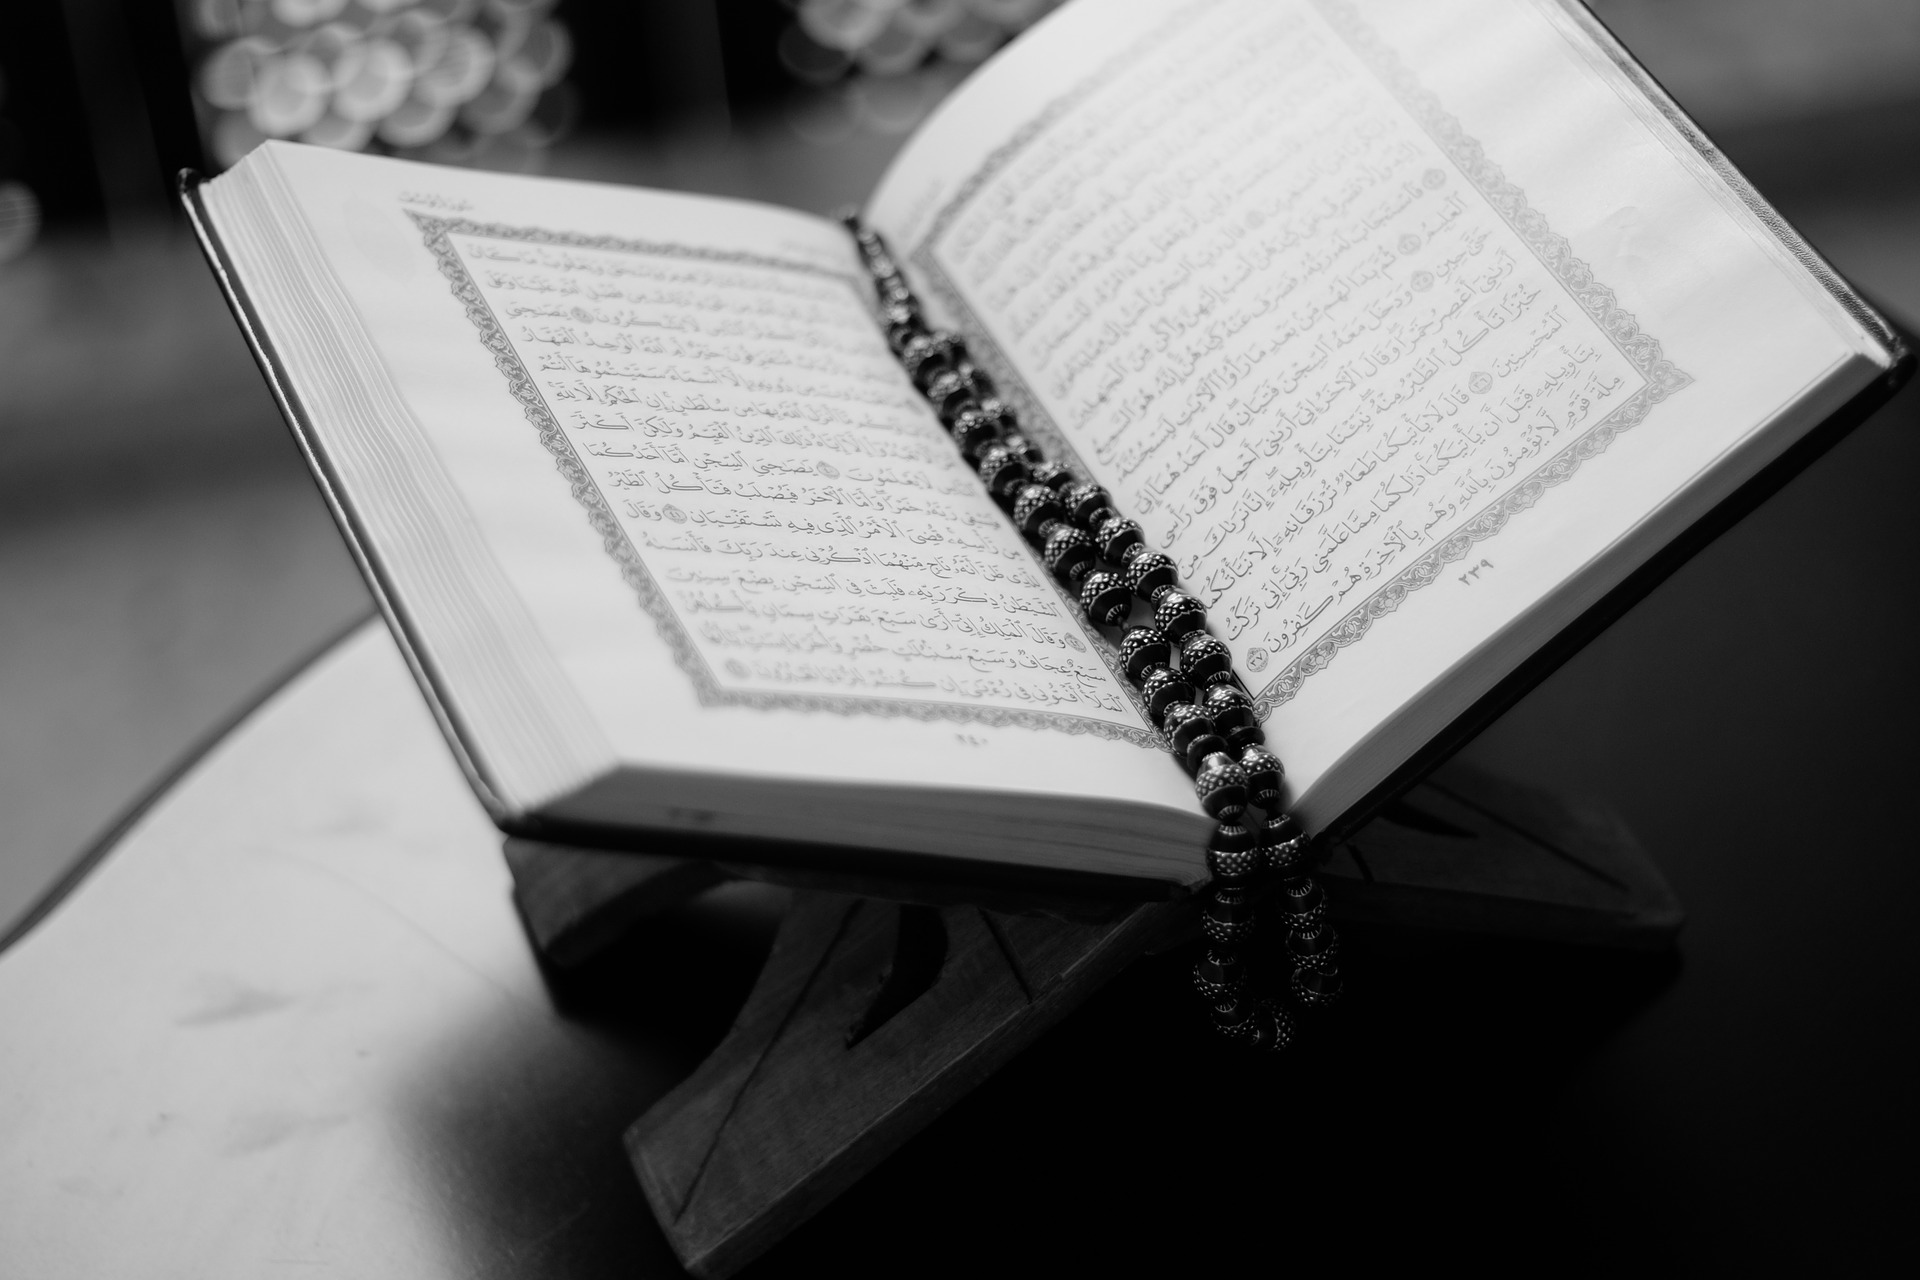 importance of Arabic and Quran